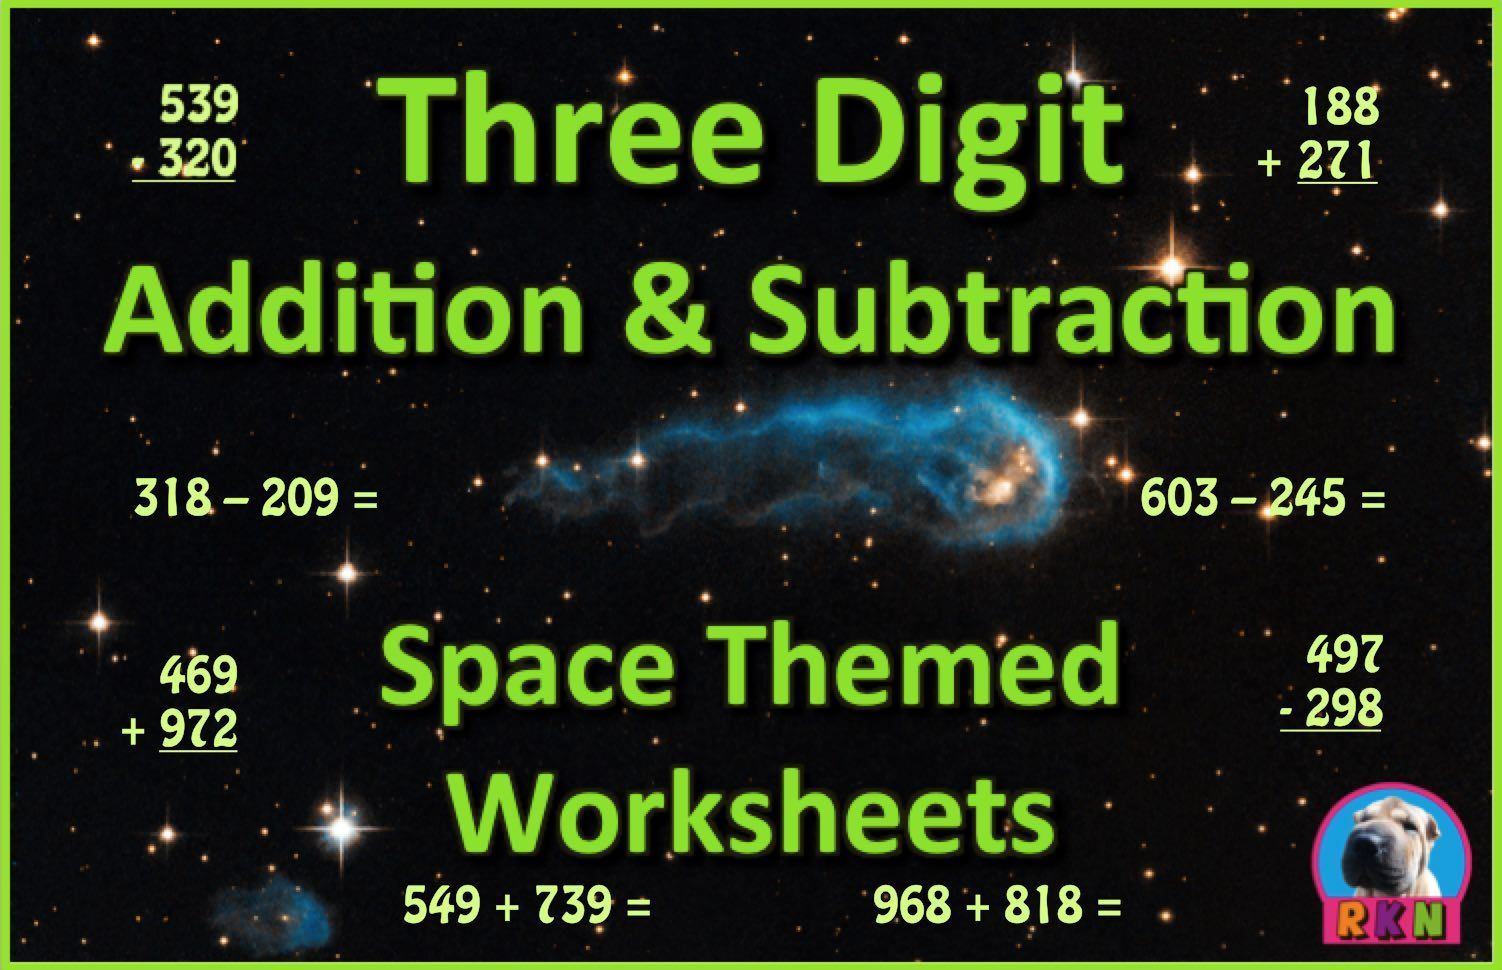 Three Digit Addition And Subtraction Worksheet Bundle